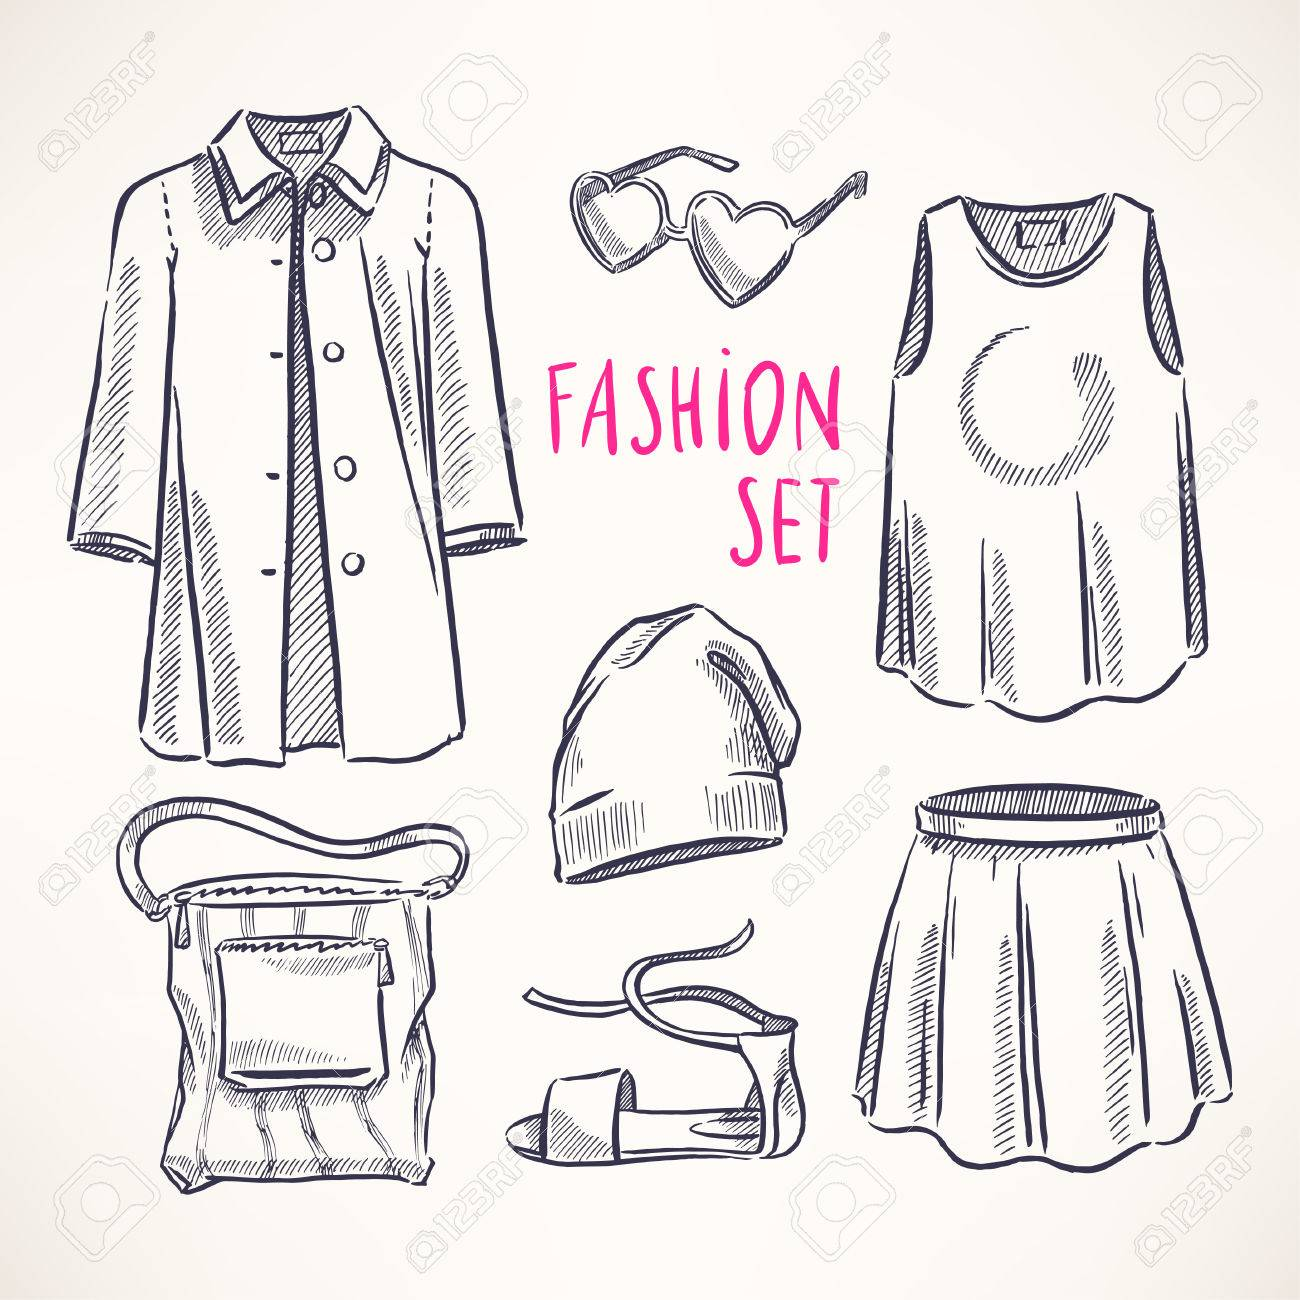 49cee52762c fashion set with women's clothing and accessories. hand-drawn..